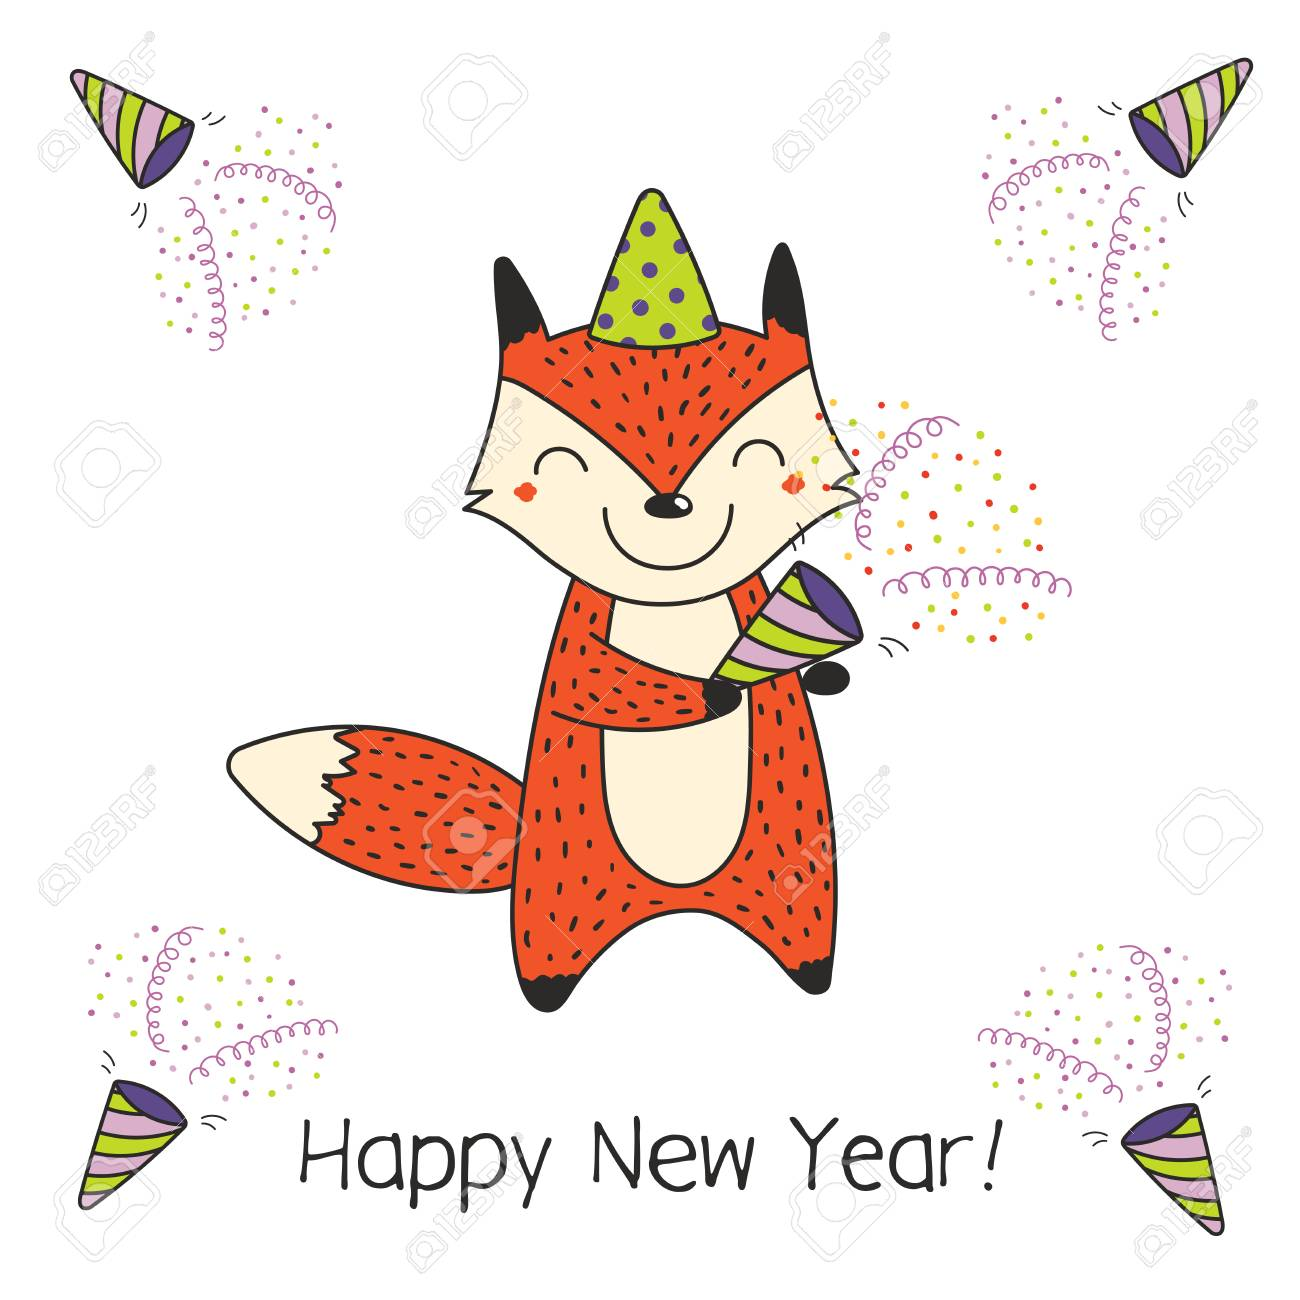 Hand drawn happy new year greeting card with cute funny cartoon hand drawn happy new year greeting card with cute funny cartoon fox with a party popper m4hsunfo